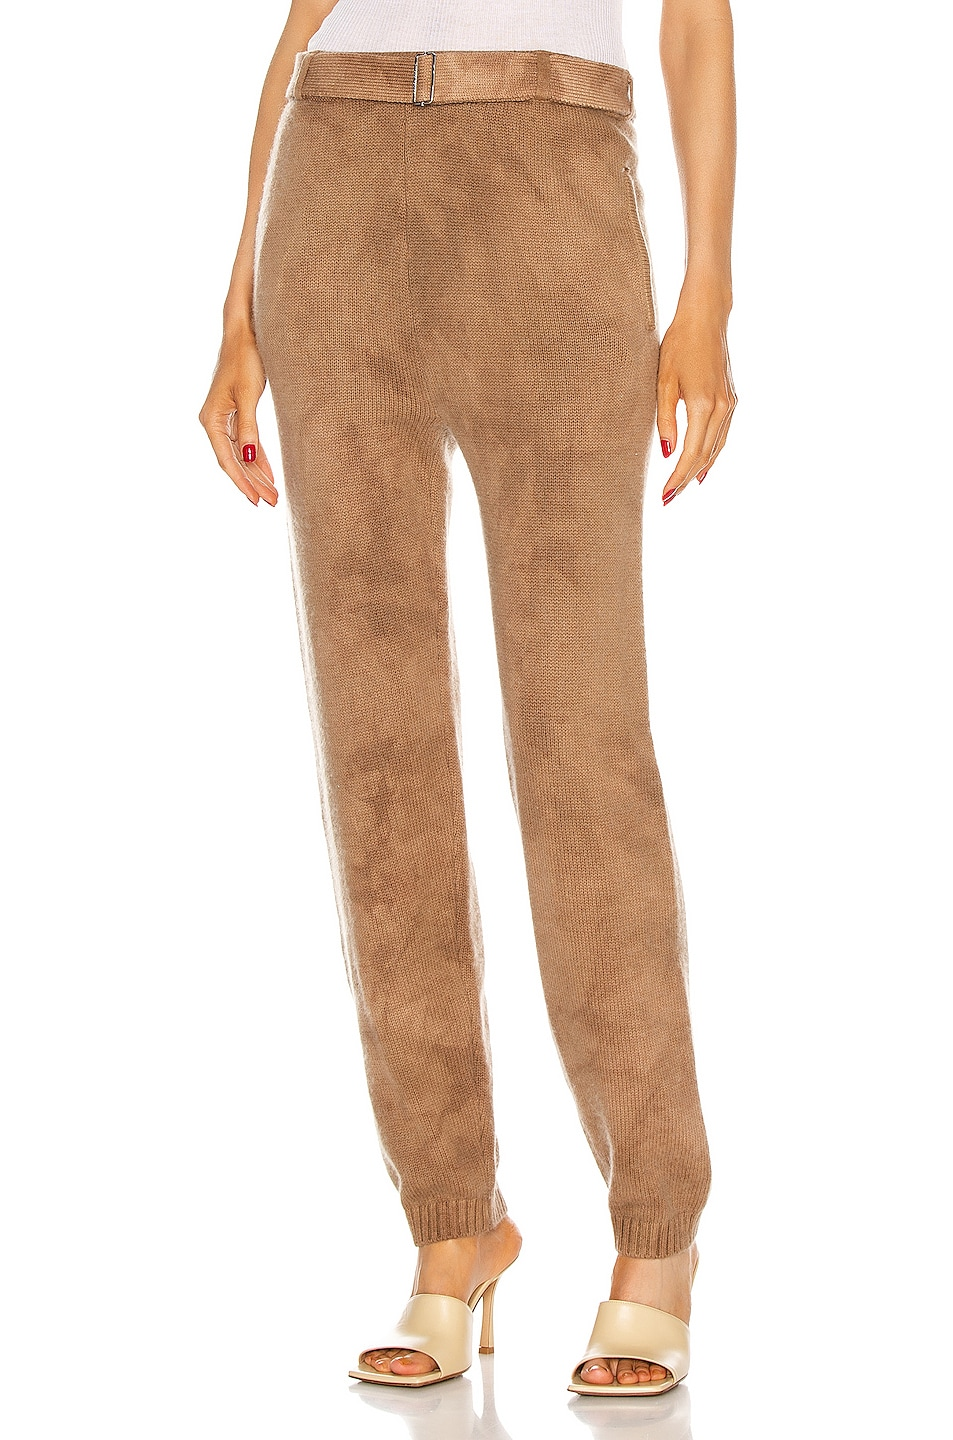 Image 1 of COTTON CITIZEN Lima Sweats in Toffee Mirage